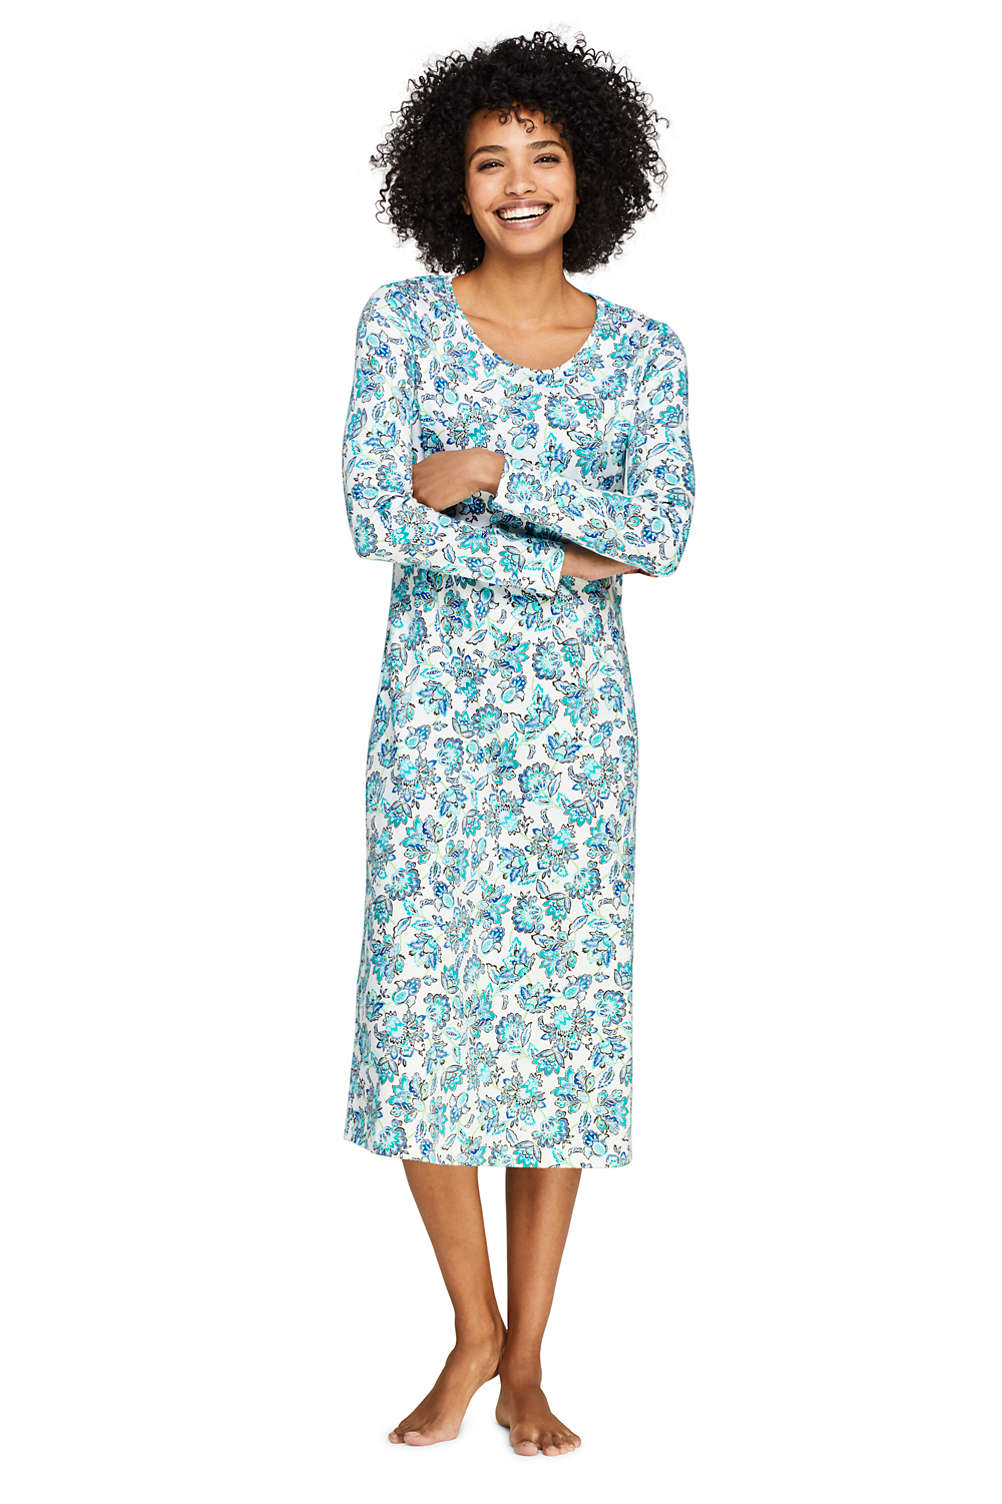 eeb9a97576 Women s Midcalf Supima Cotton Nightgown Print Long Sleeve from Lands  End